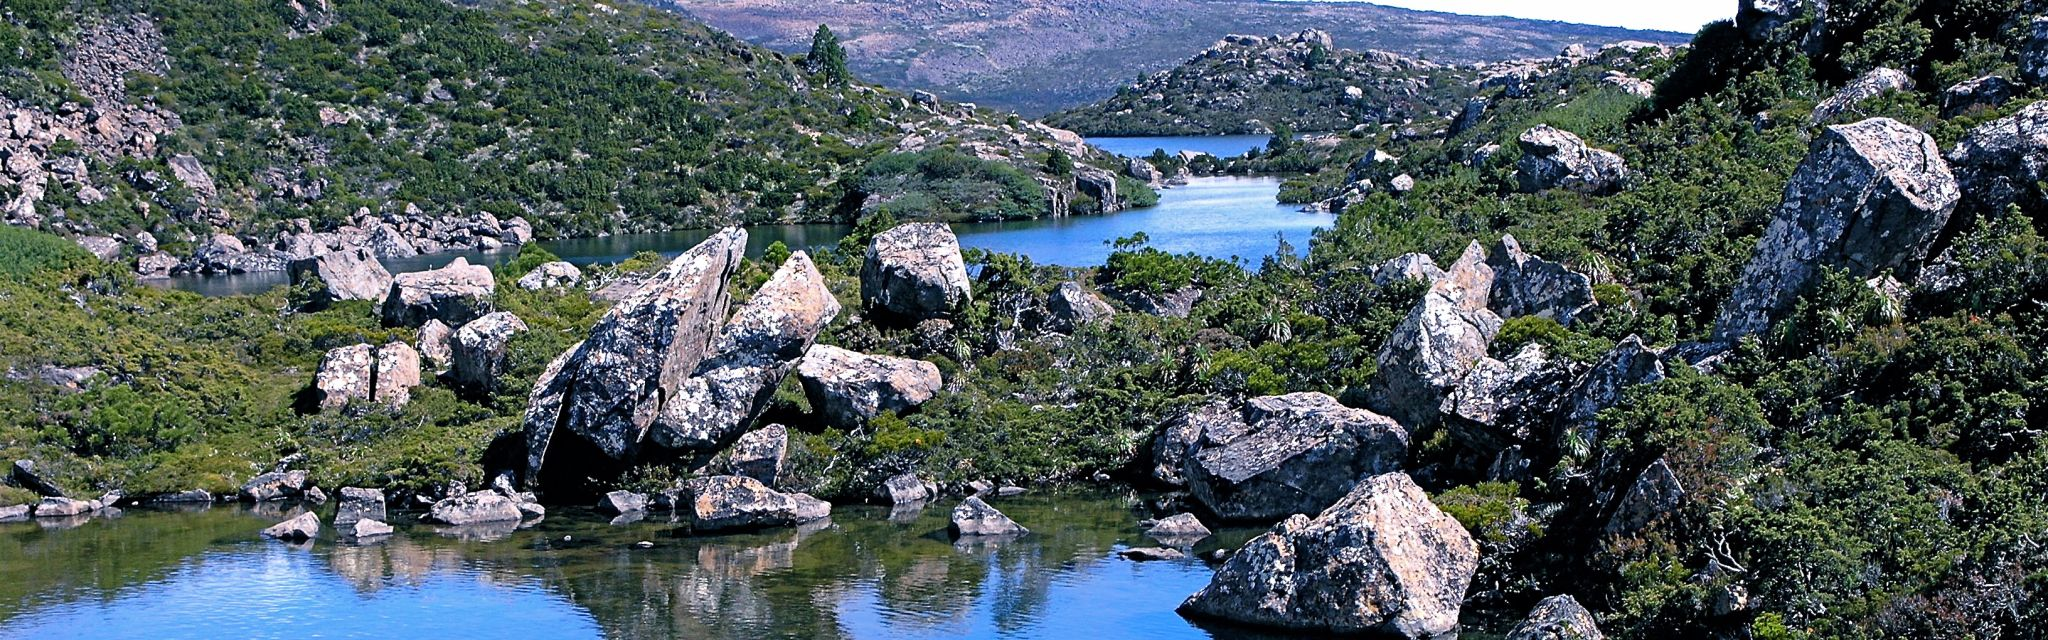 Beautiful Tarn Shelf Mt Field National Park on Nature Bound Australia tour